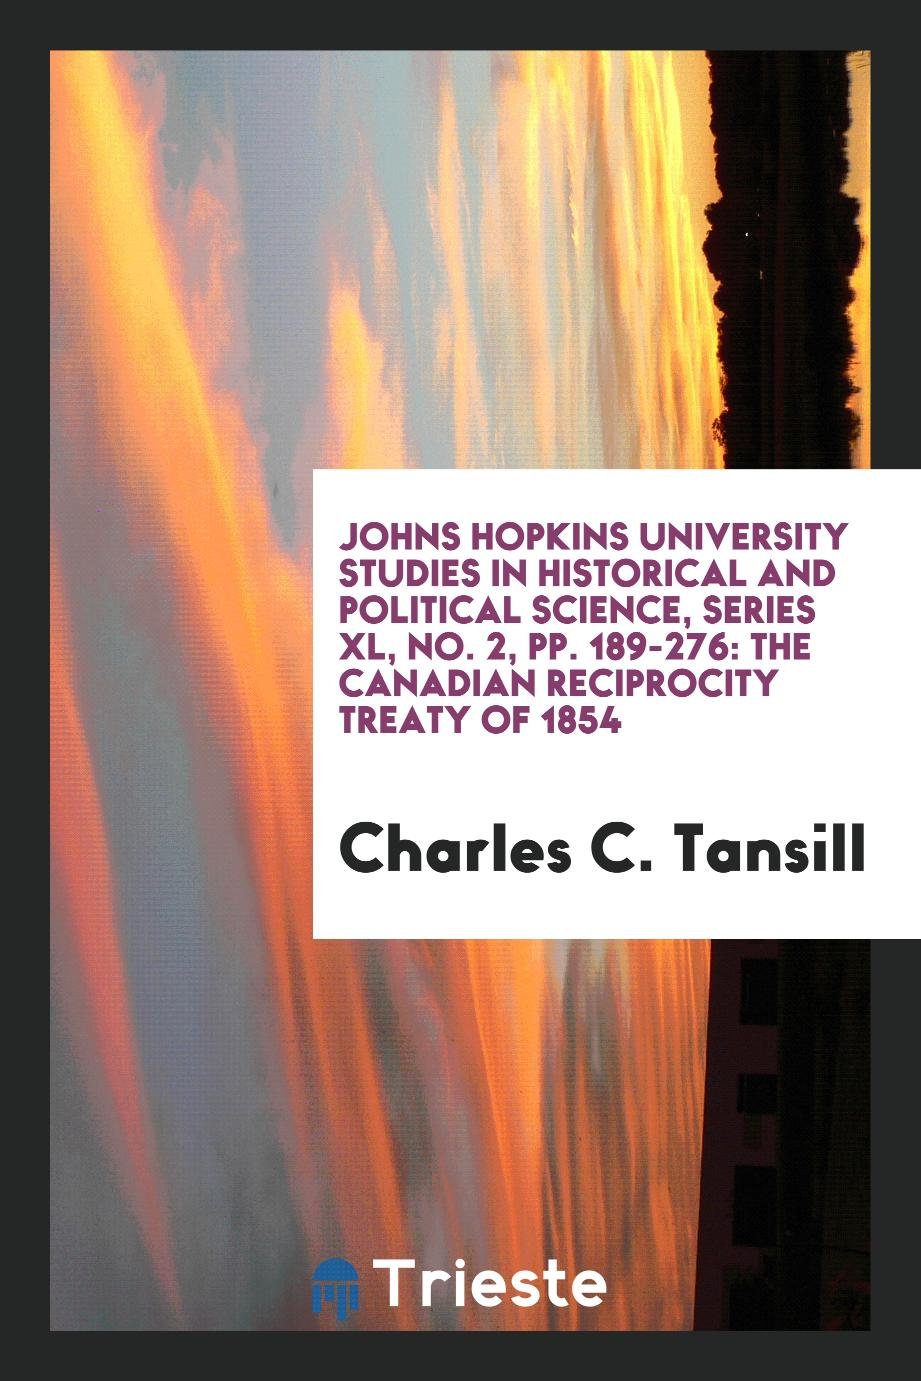 Johns Hopkins University Studies in Historical and Political Science, Series XL, No. 2, pp. 189-276: The Canadian Reciprocity Treaty of 1854